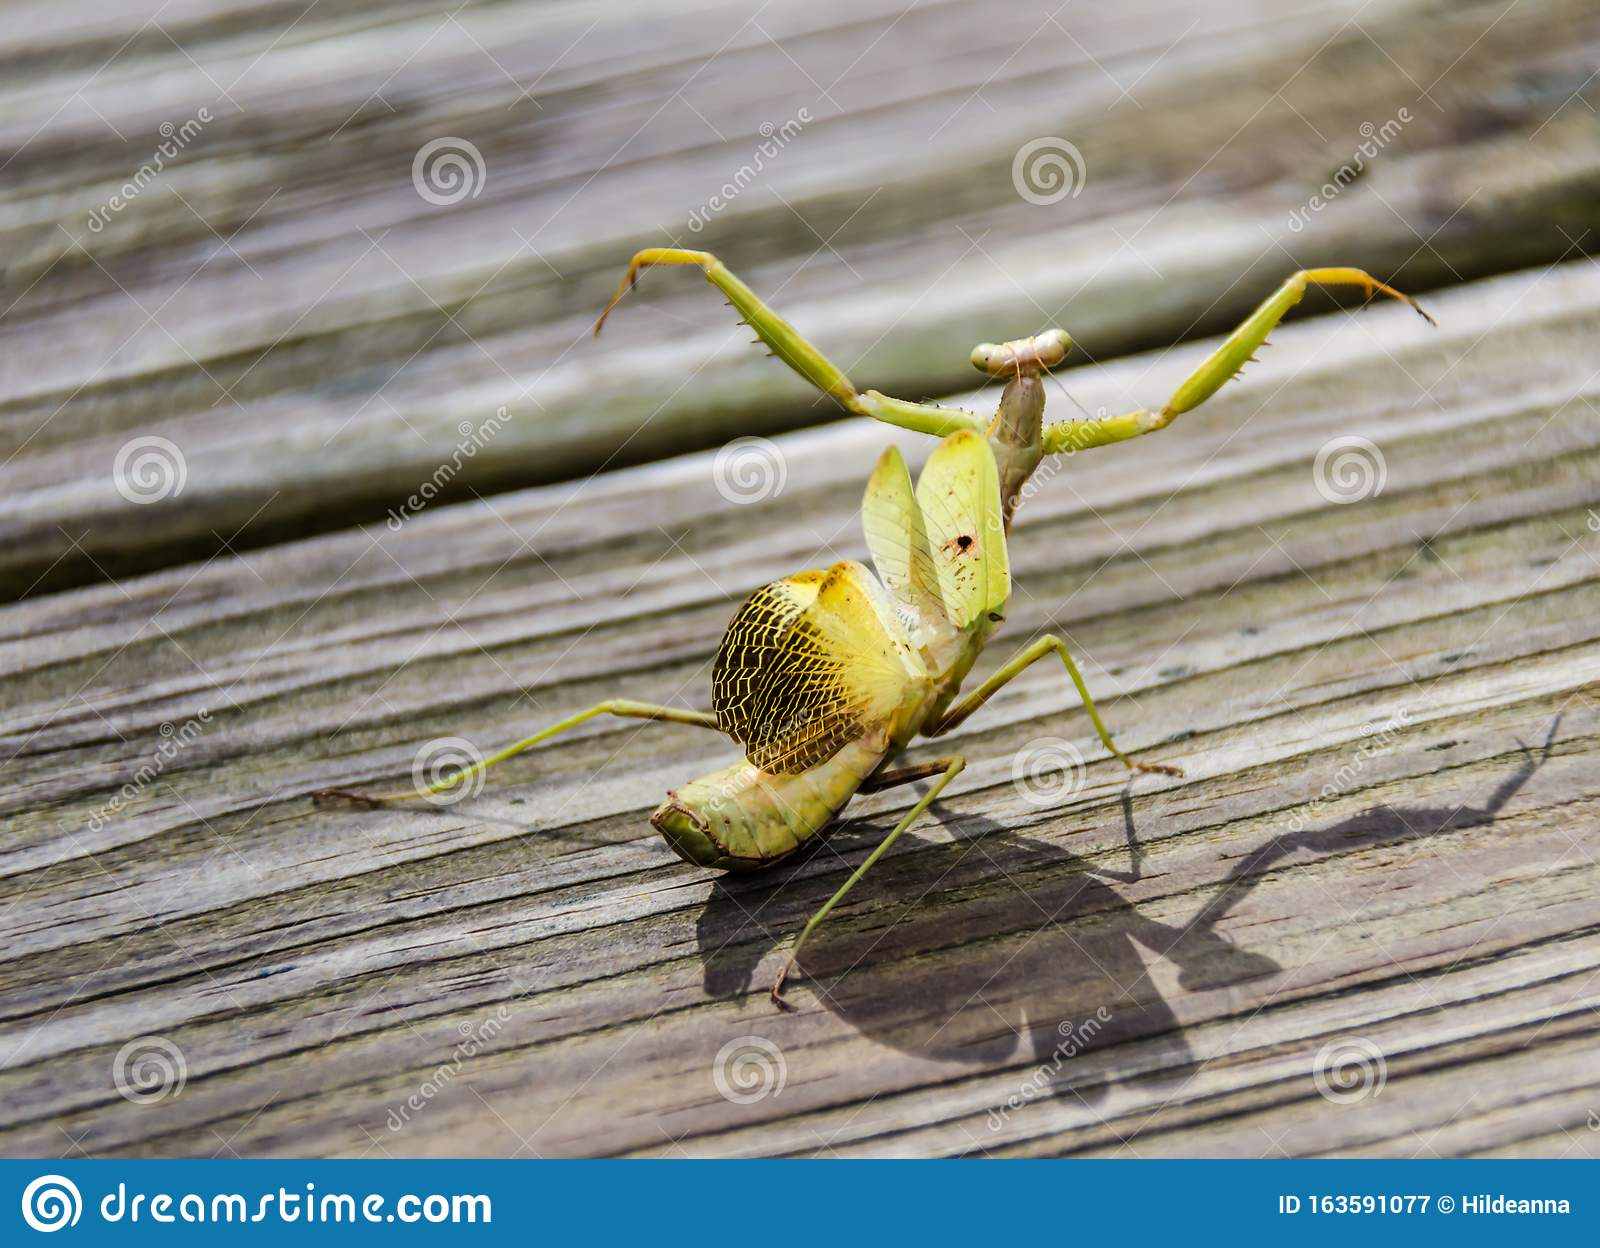 Praying Mantis In Aggressive Attack Mode With Wings Extended